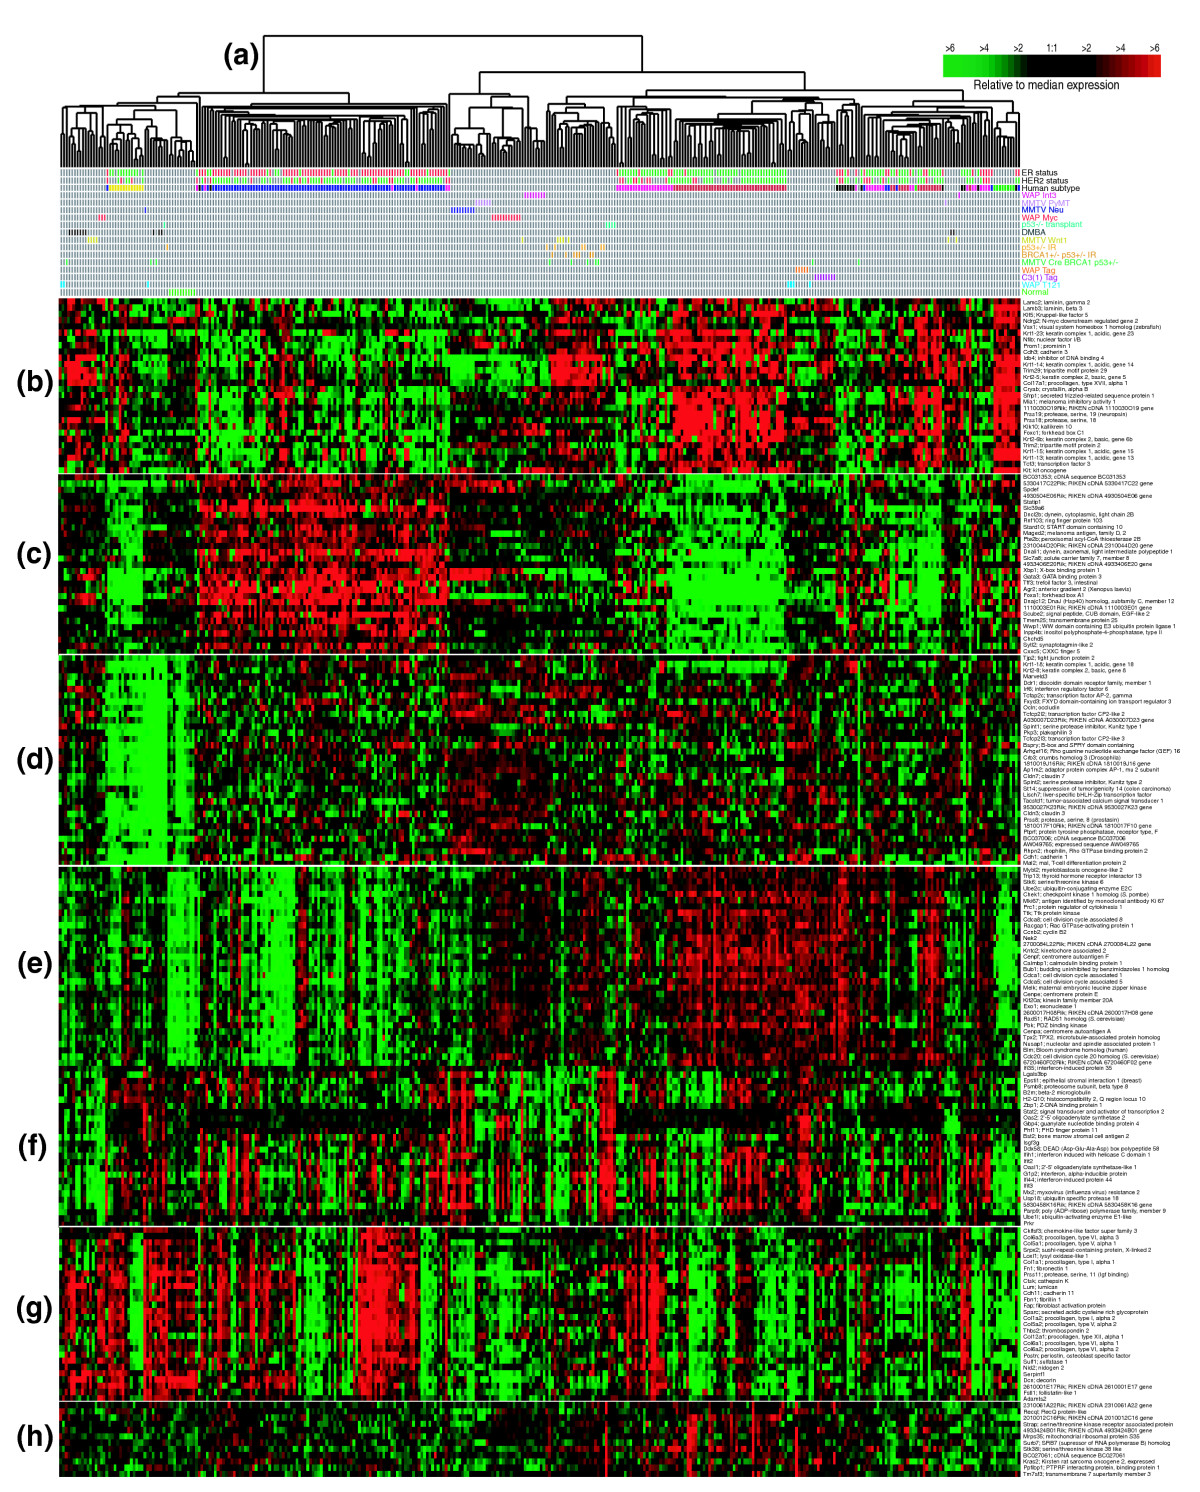 https://static-content.springer.com/image/art%3A10.1186%2Fgb-2007-8-5-r76/MediaObjects/13059_2006_Article_1558_Fig3_HTML.jpg